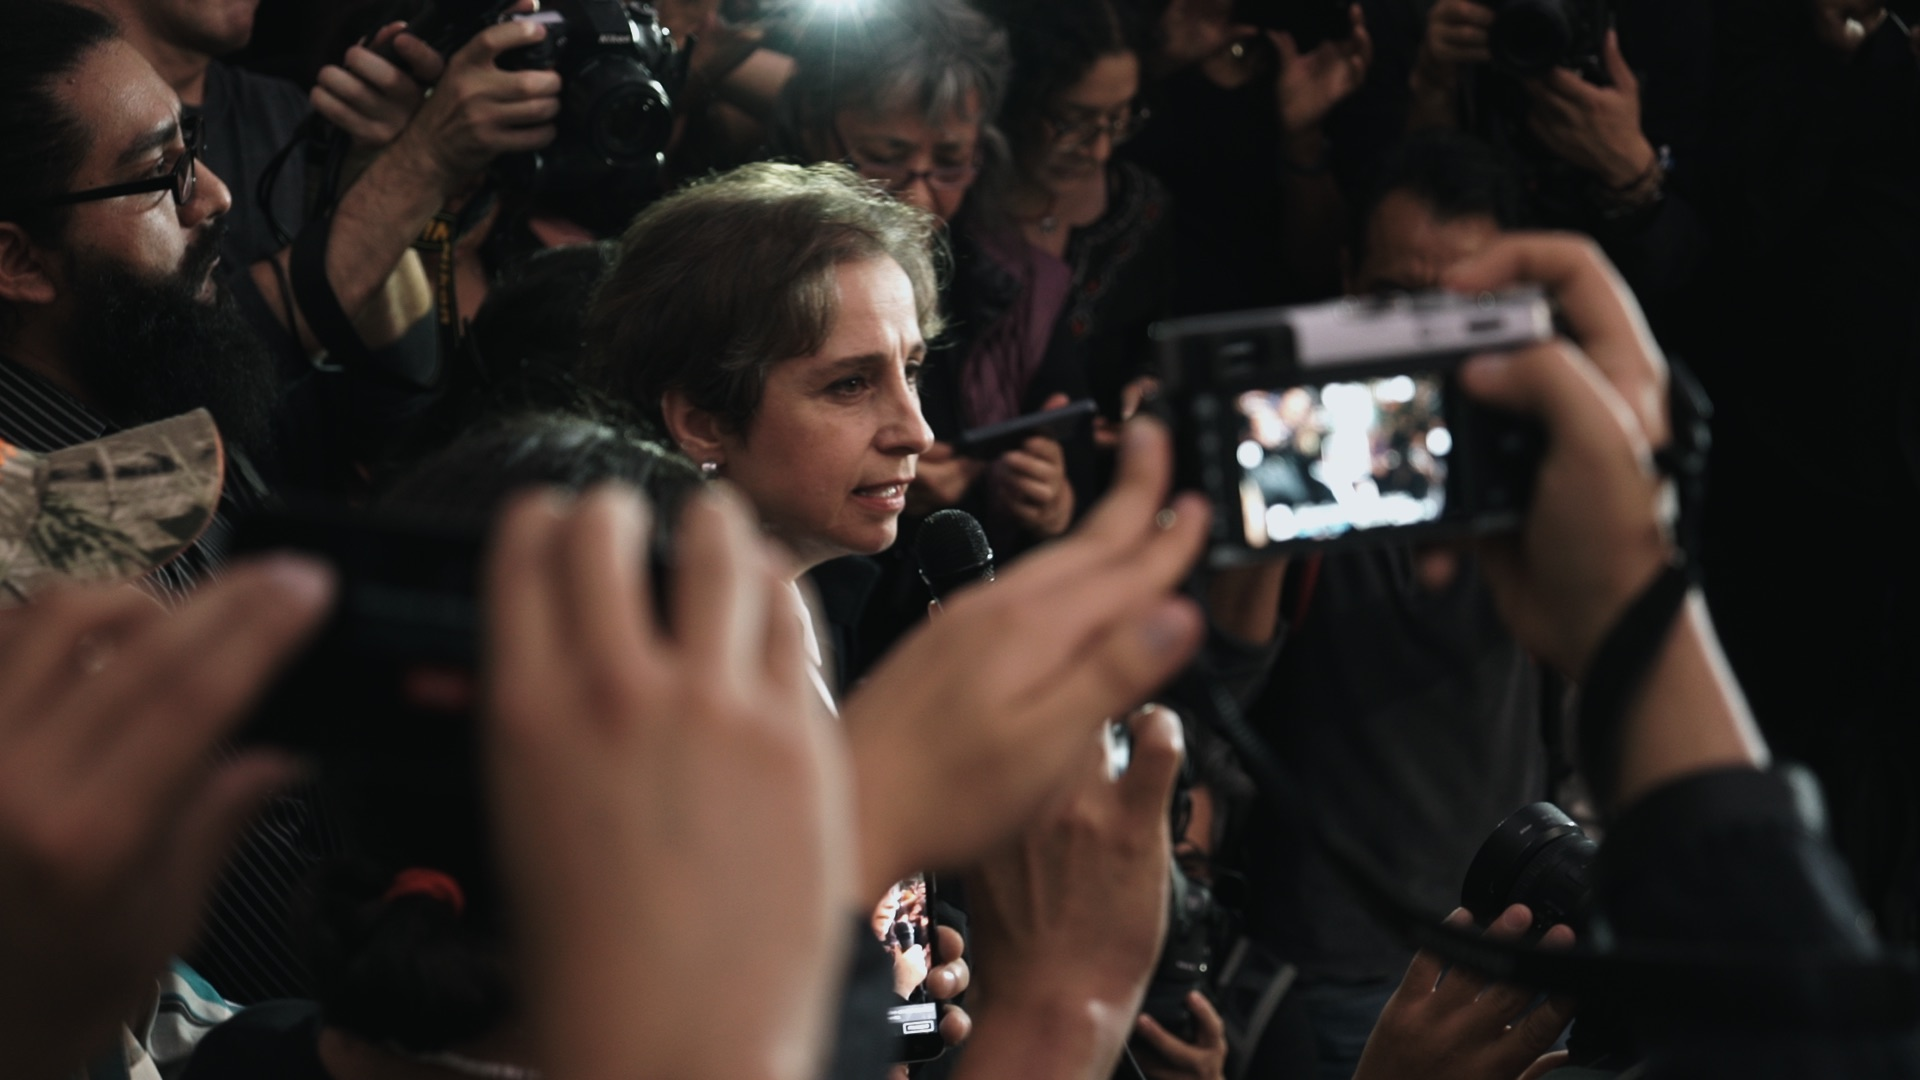 A woman in the midst of a media frenzy speaks into a microphone while journalists capture photos and videos of her.